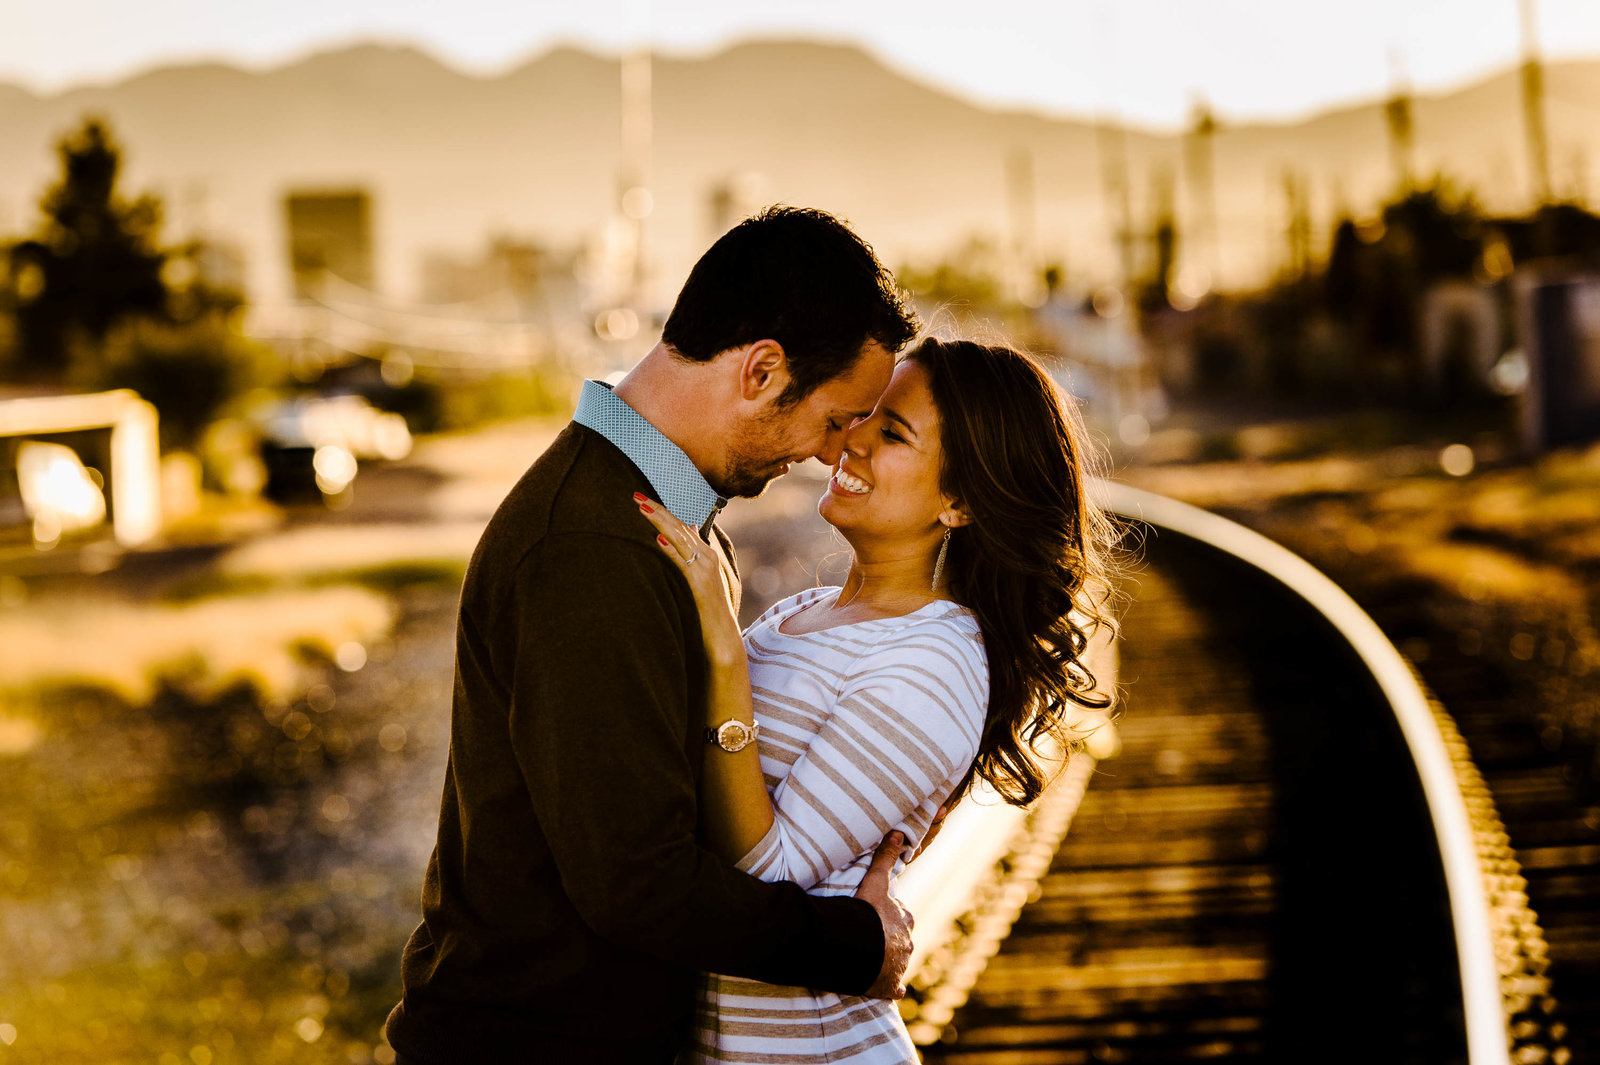 058-El-paso-wedding-photographer-El Paso Wedding Photographer_E28